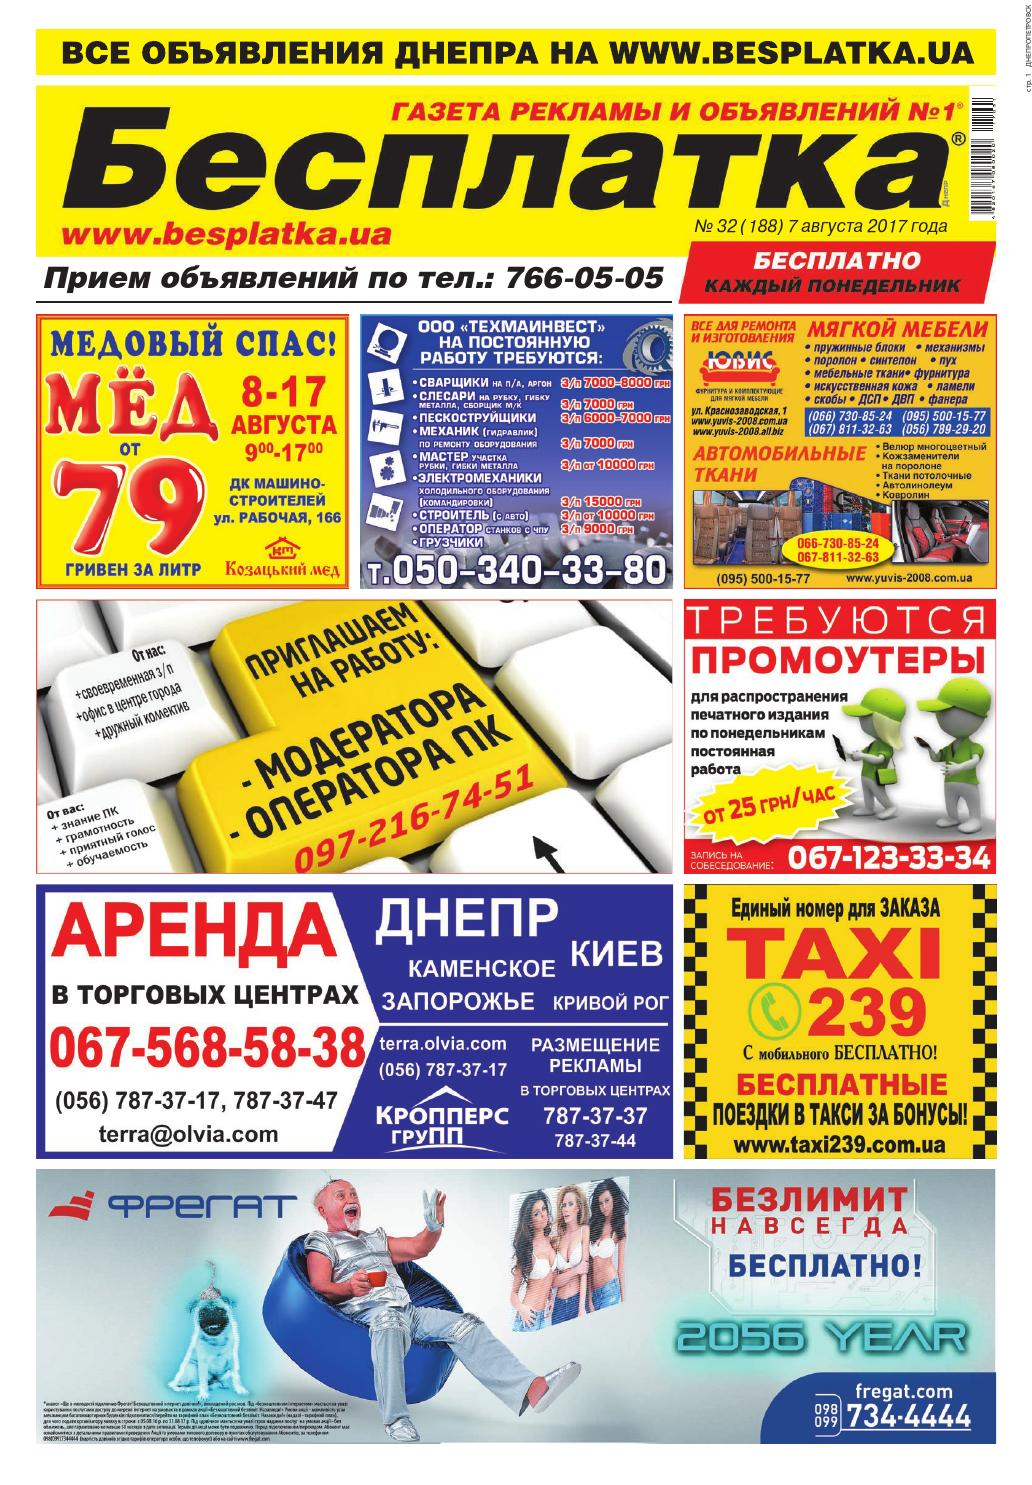 Besplatka  32 Днепр by besplatka ukraine - issuu ce3332722fb44